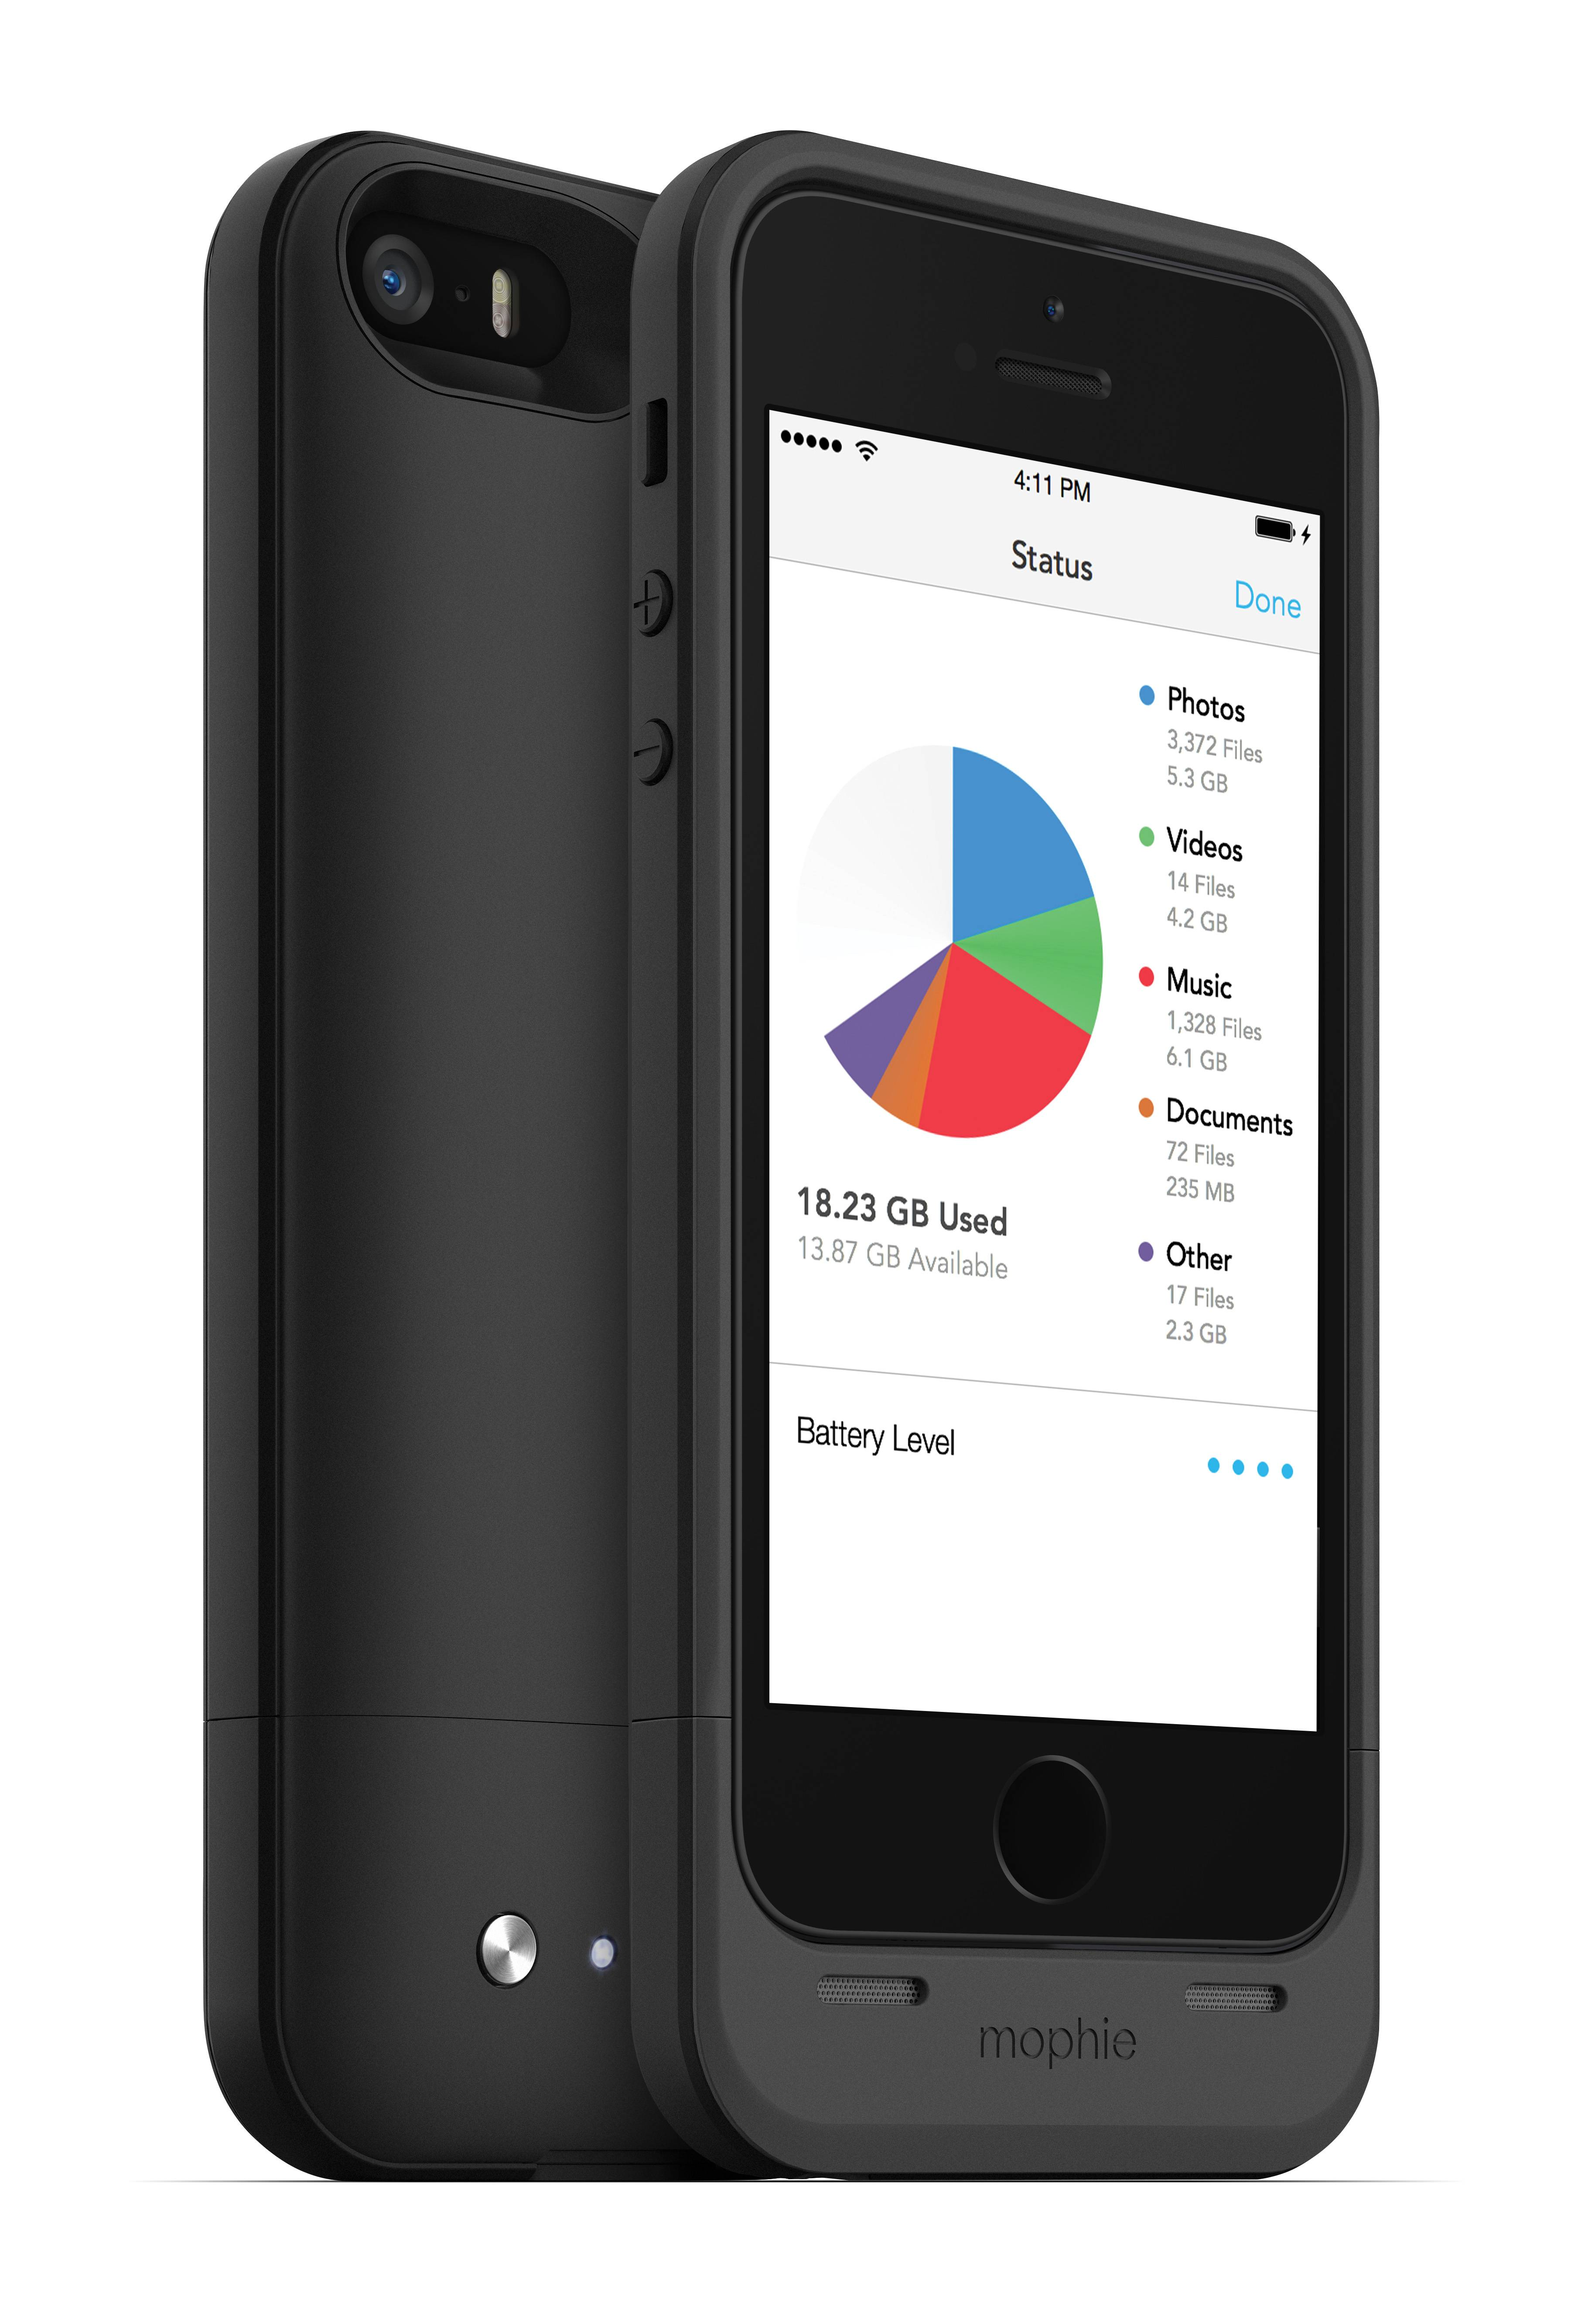 This product image provided by Mophie shows the Mophie Space Pack for the iPhone. The Space Pack doubles battery life and gives you an additional 16 or 32 gigabytes of storage. It also serves as a phone case, albeit a heavy and bulky one because it needs to fit a battery and memory.